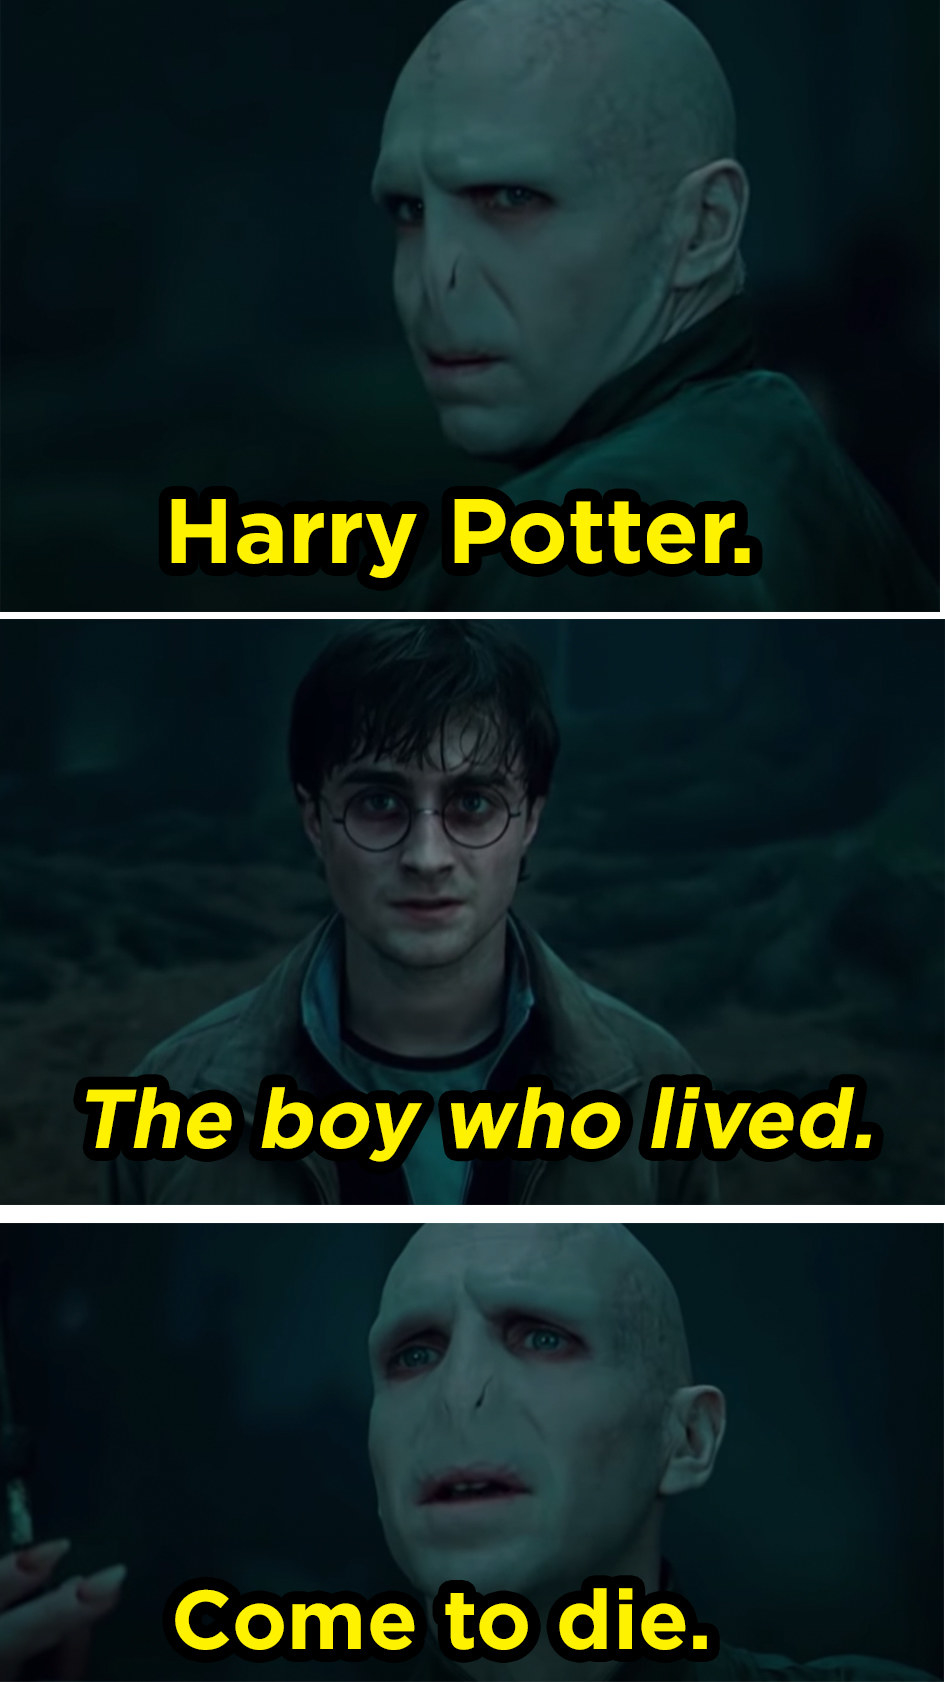 """a bald man-creature with two slits for a nose stands in a forest. he says """"harry potter, the boy who lived, come to die."""""""